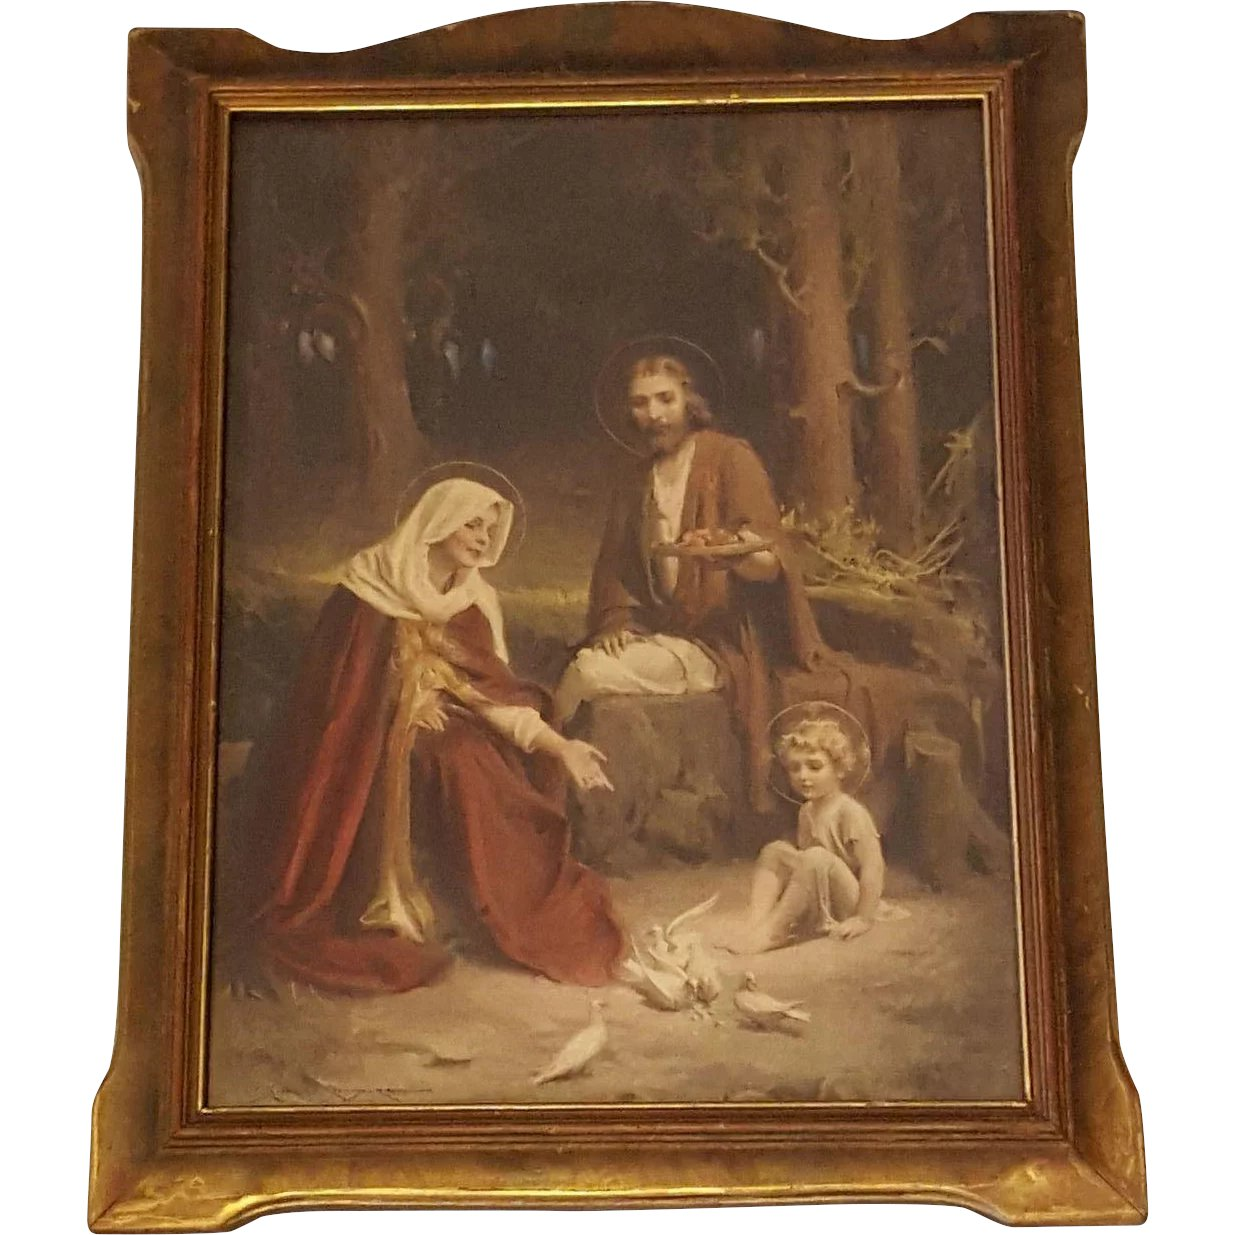 By Chambers: Holy Family Print By Charles Bosseron Chambers Circa 1920